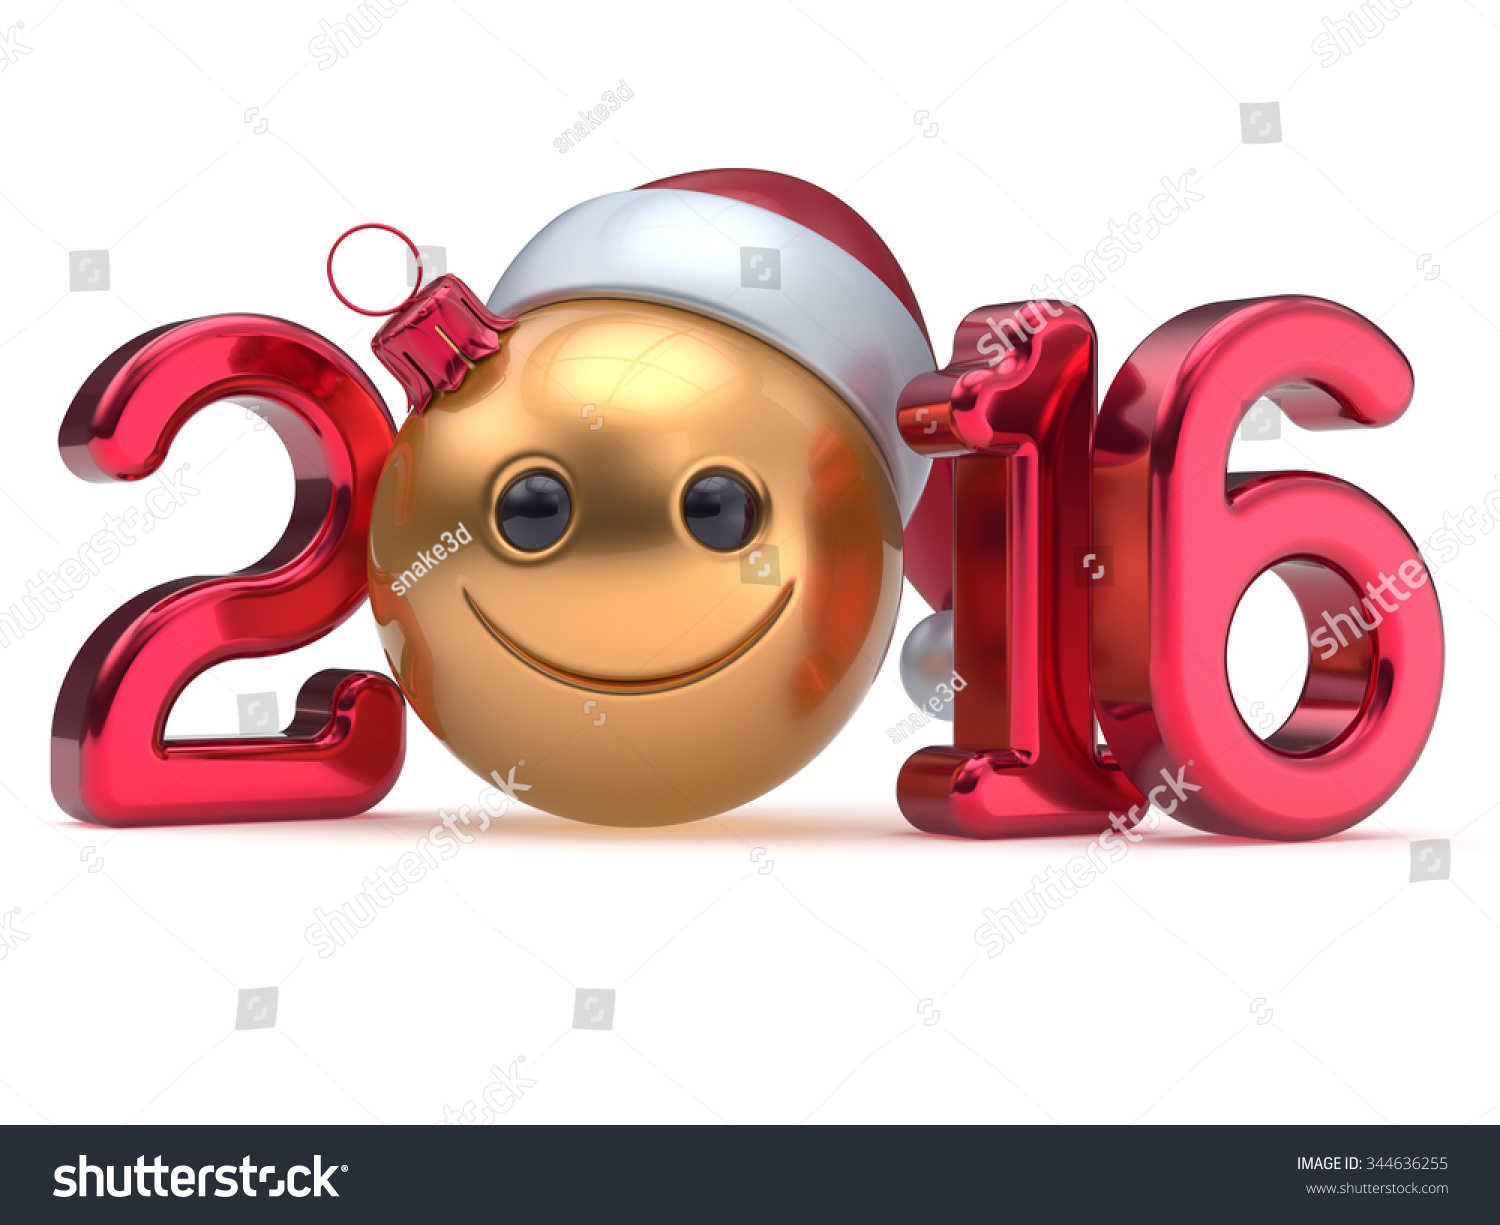 New year s eve calendar date smiley face emoticon